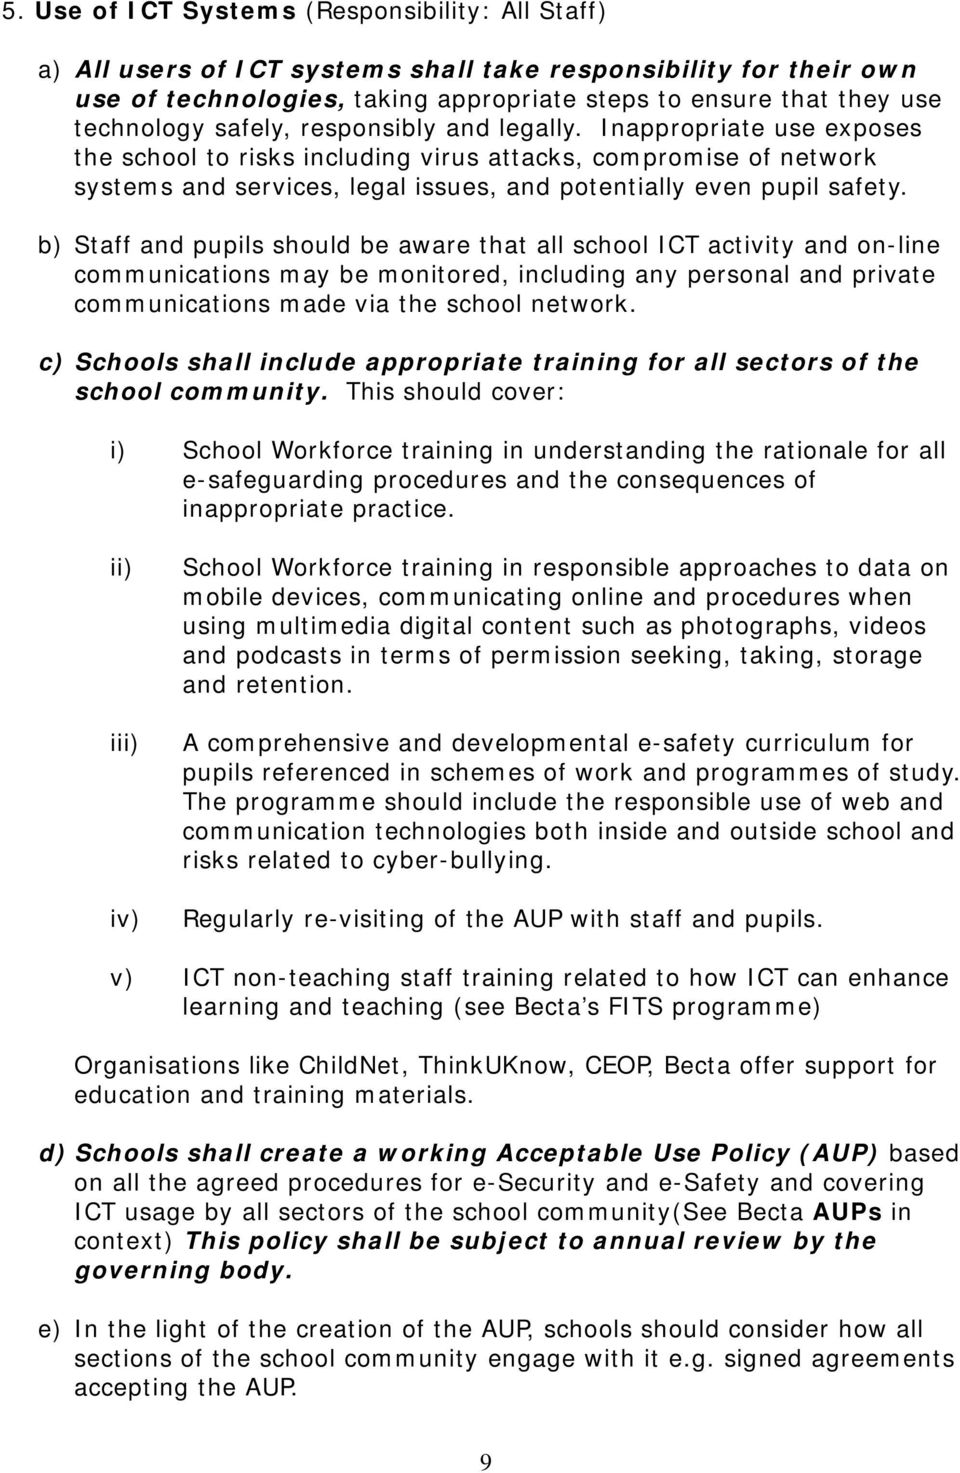 b) Staff and pupils should be aware that all school ICT activity and on-line communications may be monitored, including any personal and private communications made via the school network.